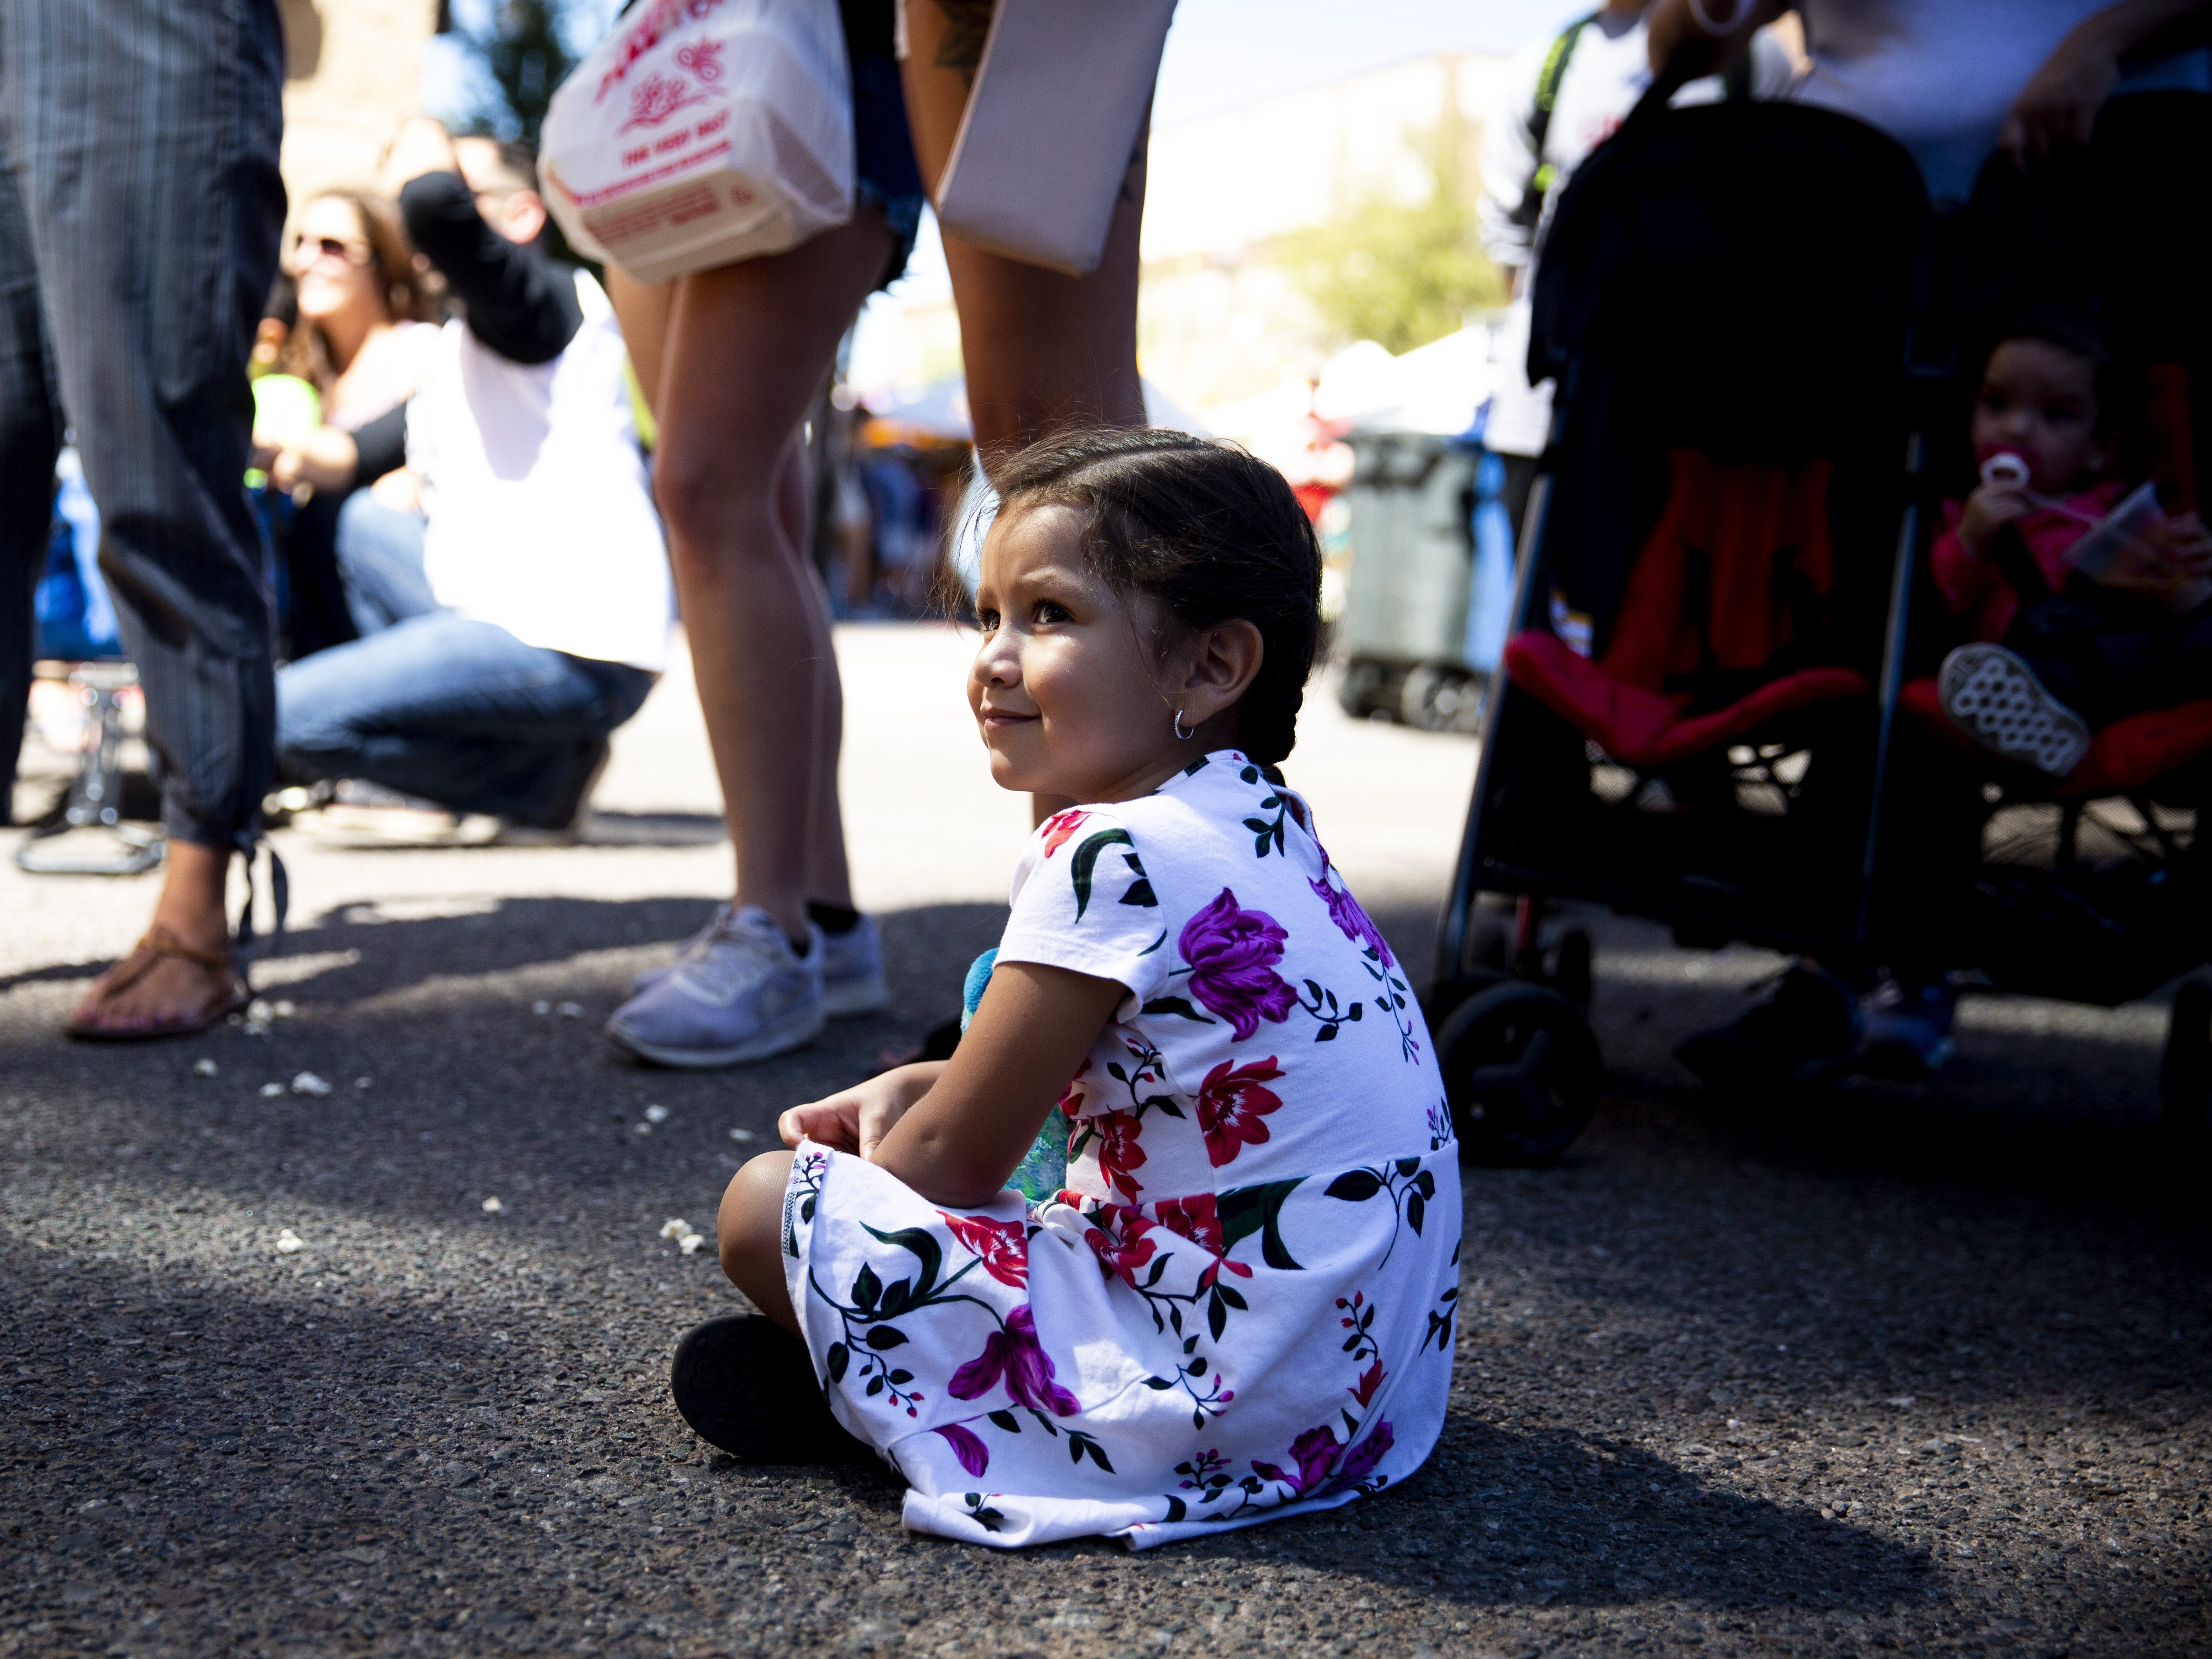 Ariana Peña, 3, watches a dance competition during the Spring Tempe Festival of the Arts on Saturday, March 30, 2019.